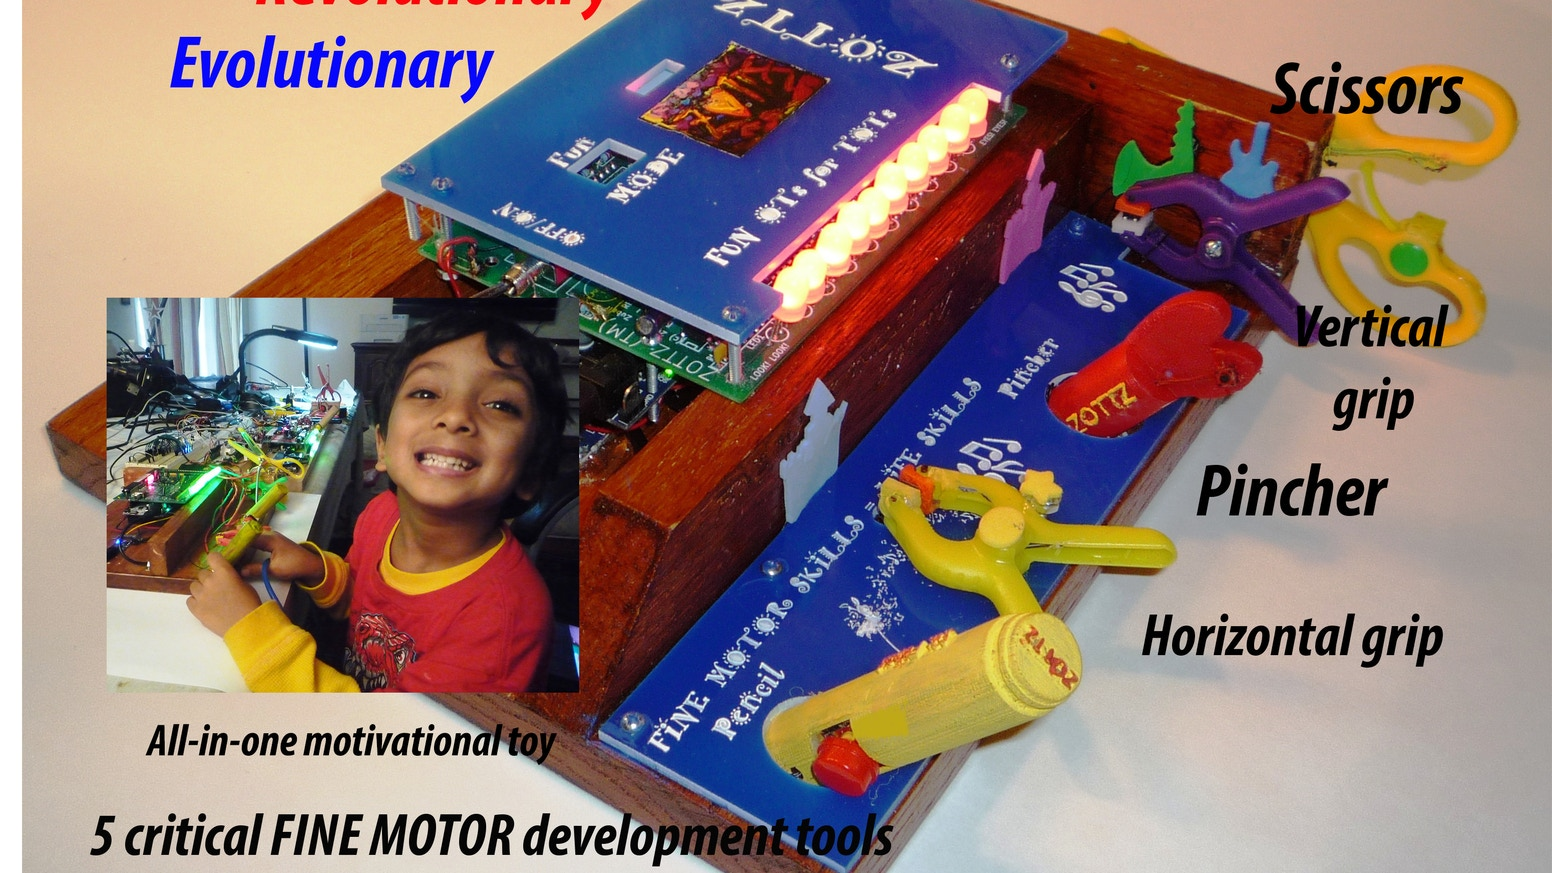 ZOTTZ is a learning platform for fine motor skills, focused fingers fighting autism, positive sensory feedback for occupational therapy